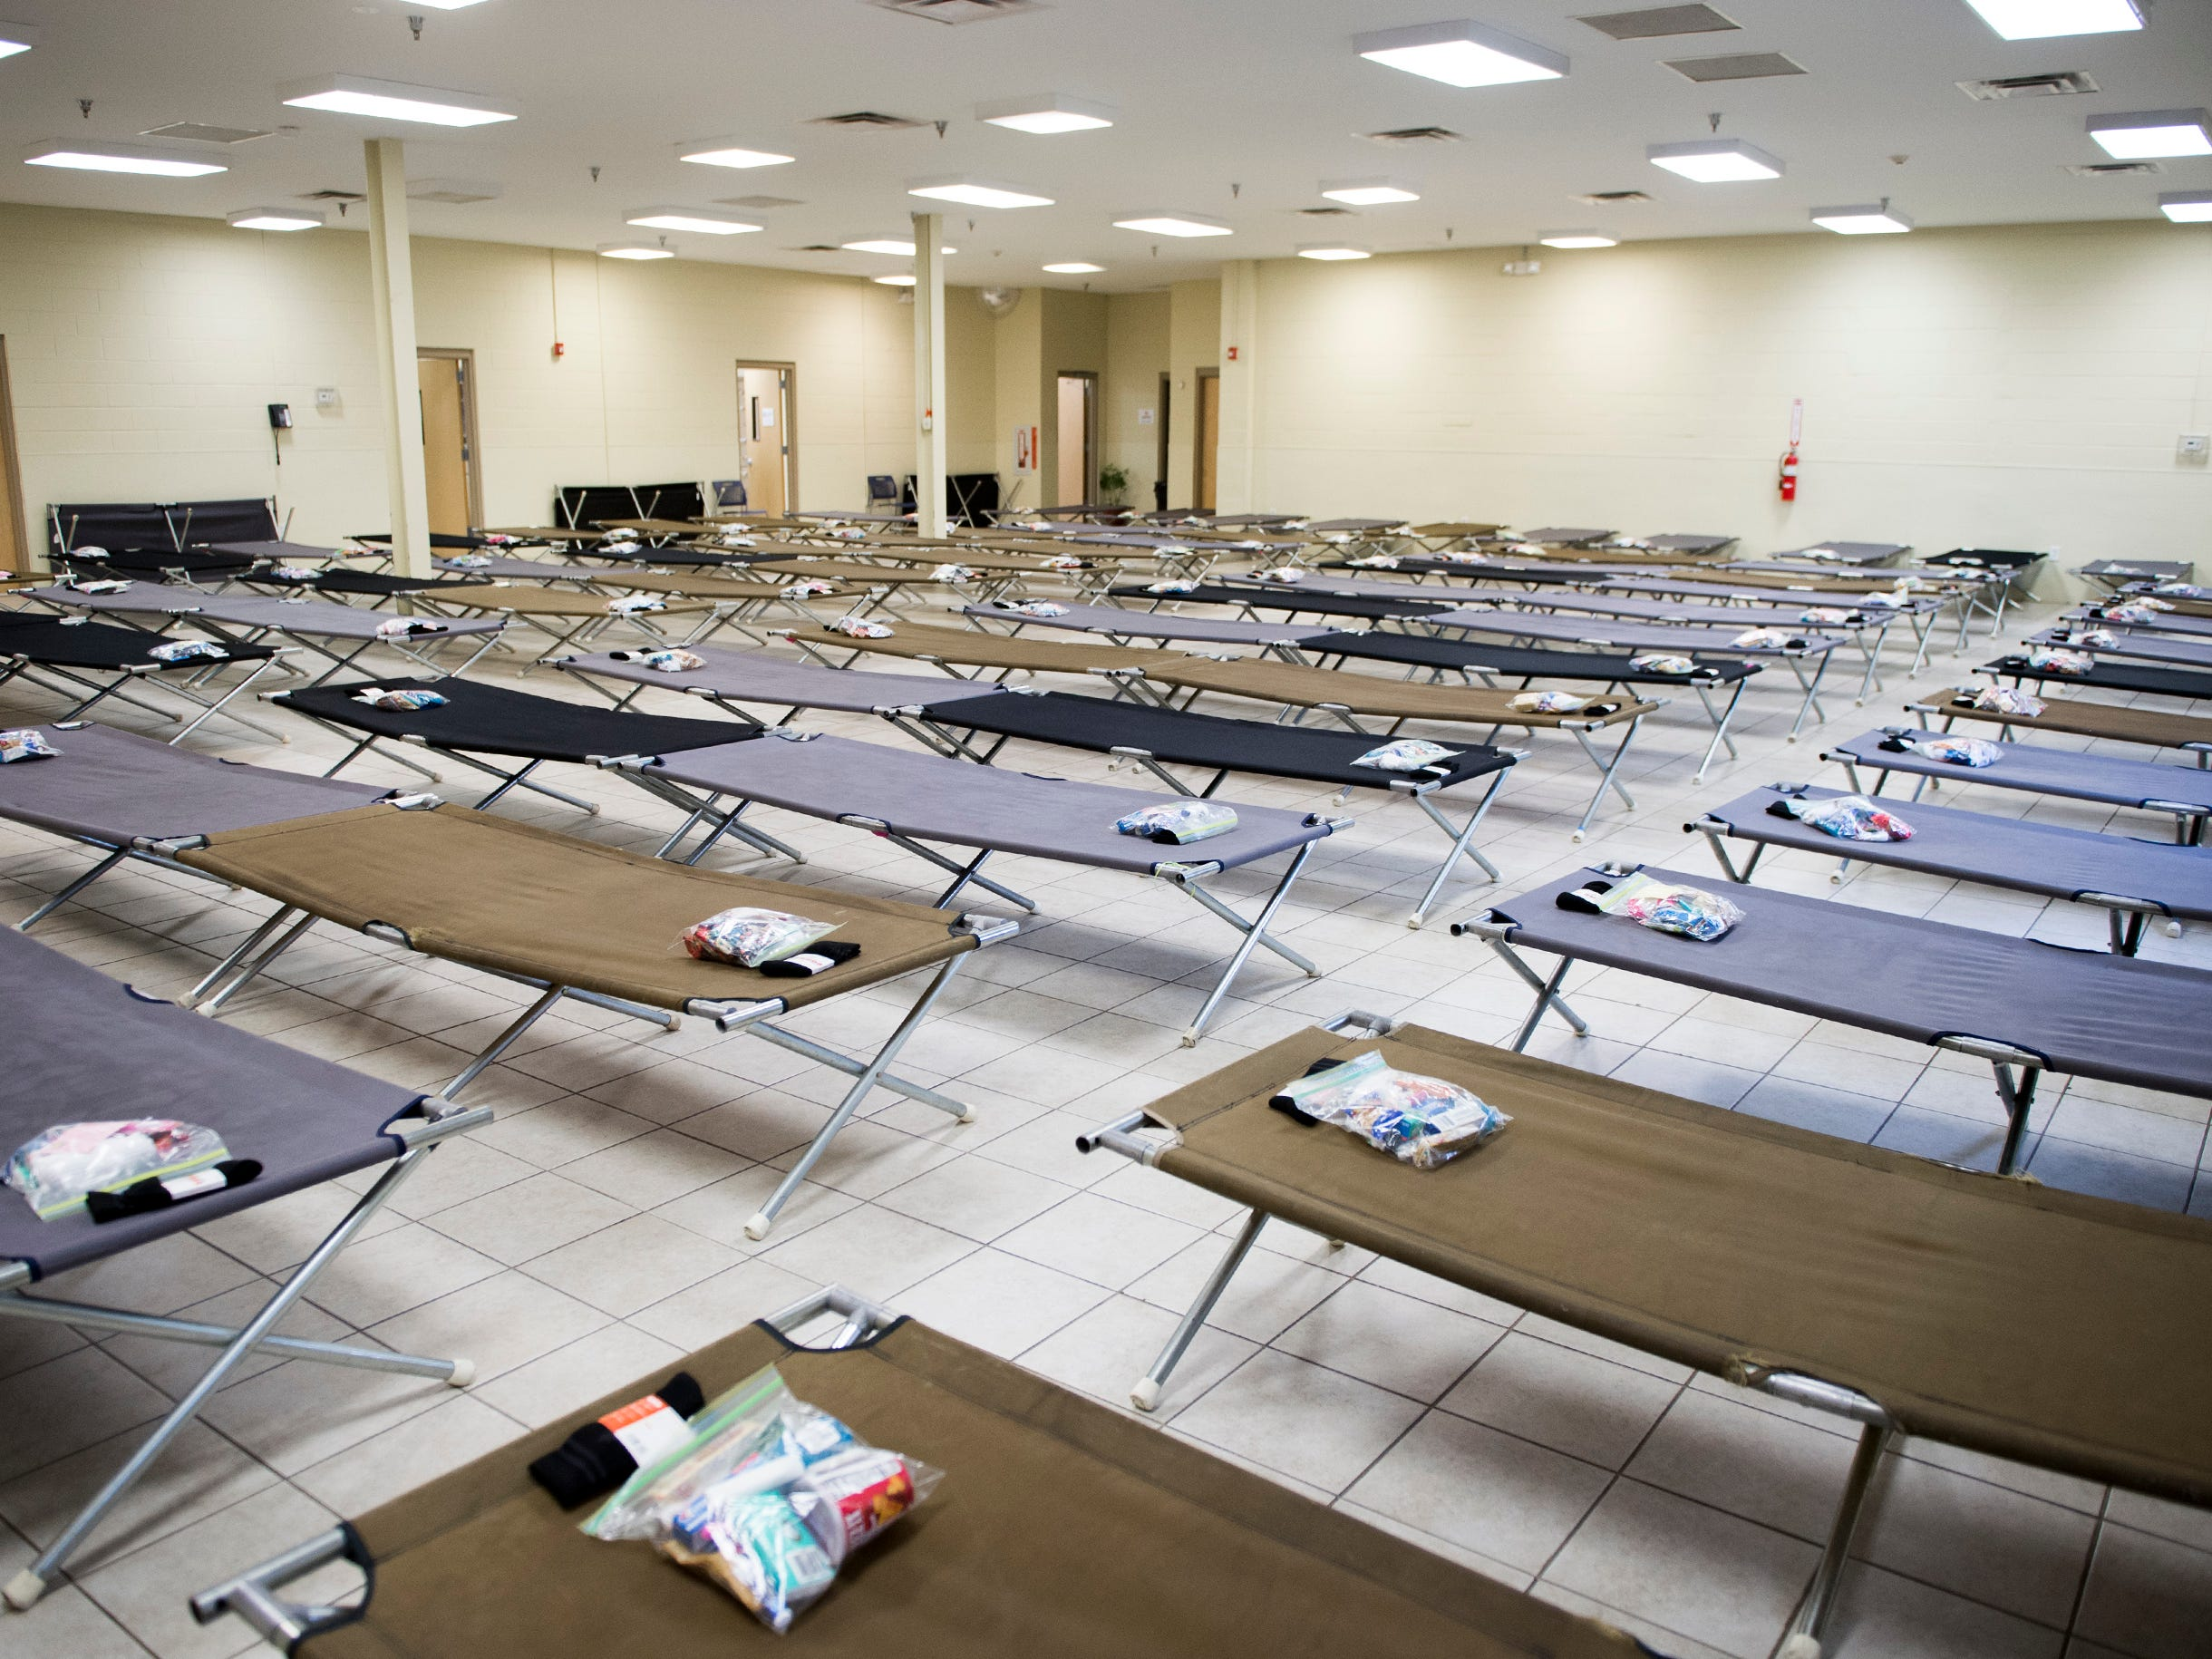 Cots are set up for guests Tuesday, Nov. 13, 2018 at Joseph's House in Camden, N.J.